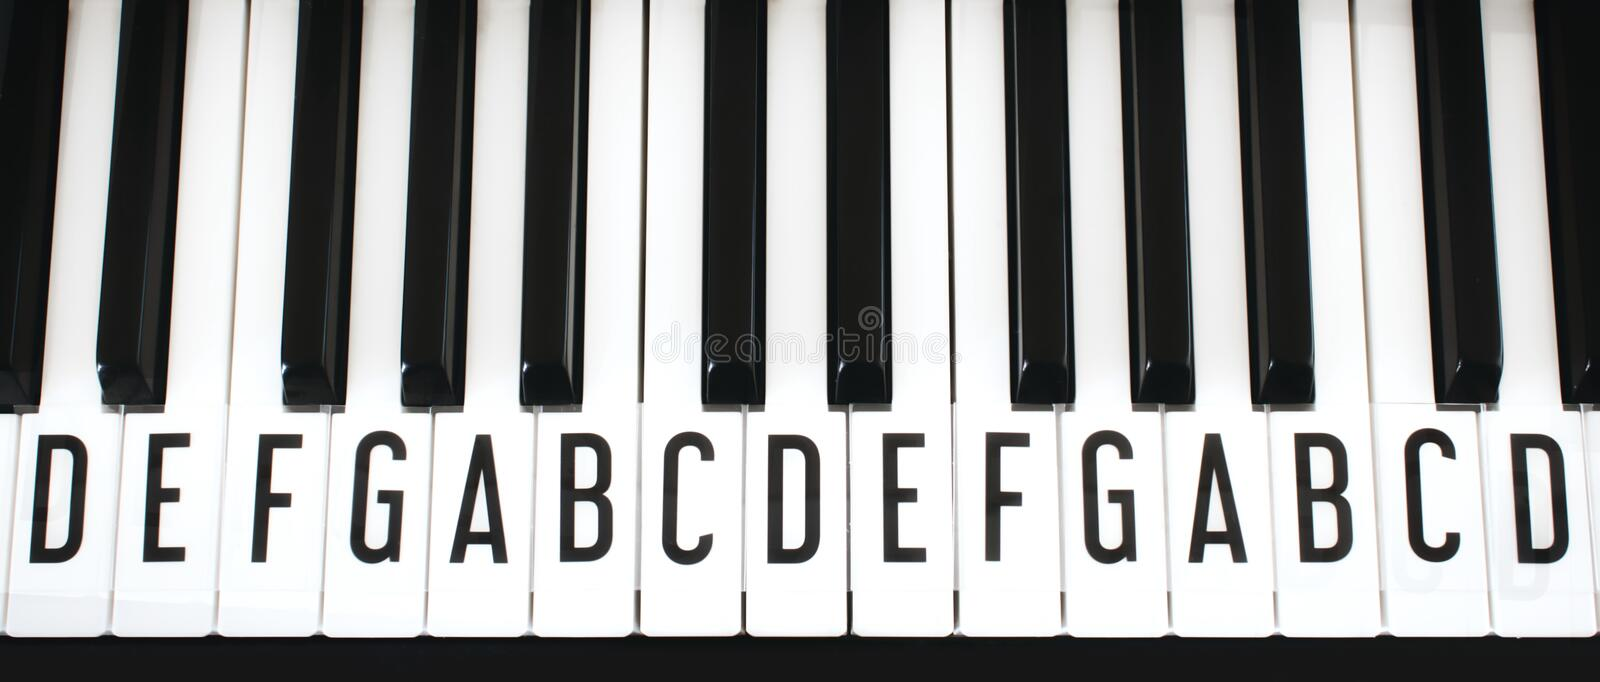 Top-down view of piano keyboard keys with letters of notes of the scale superimposed stock photography